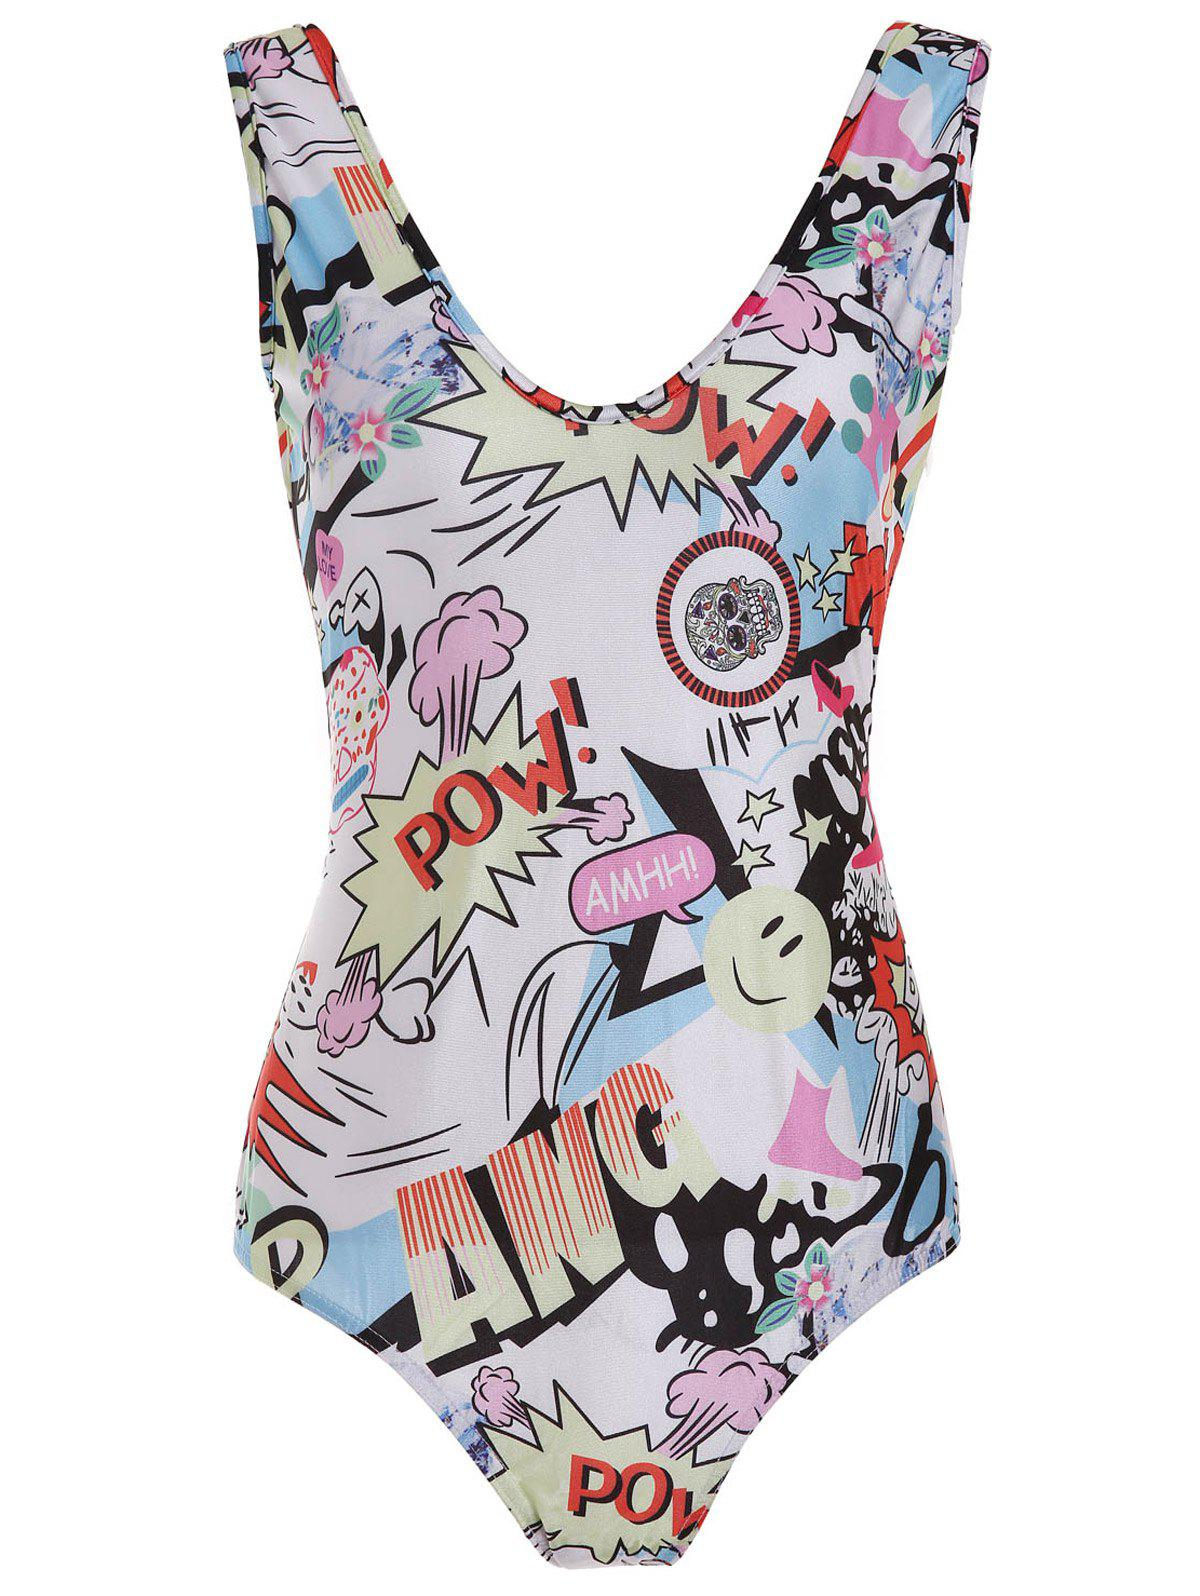 Fashionable Scoop Neck Full Print Slimming Swimsuit For Women - COLORMIX XL